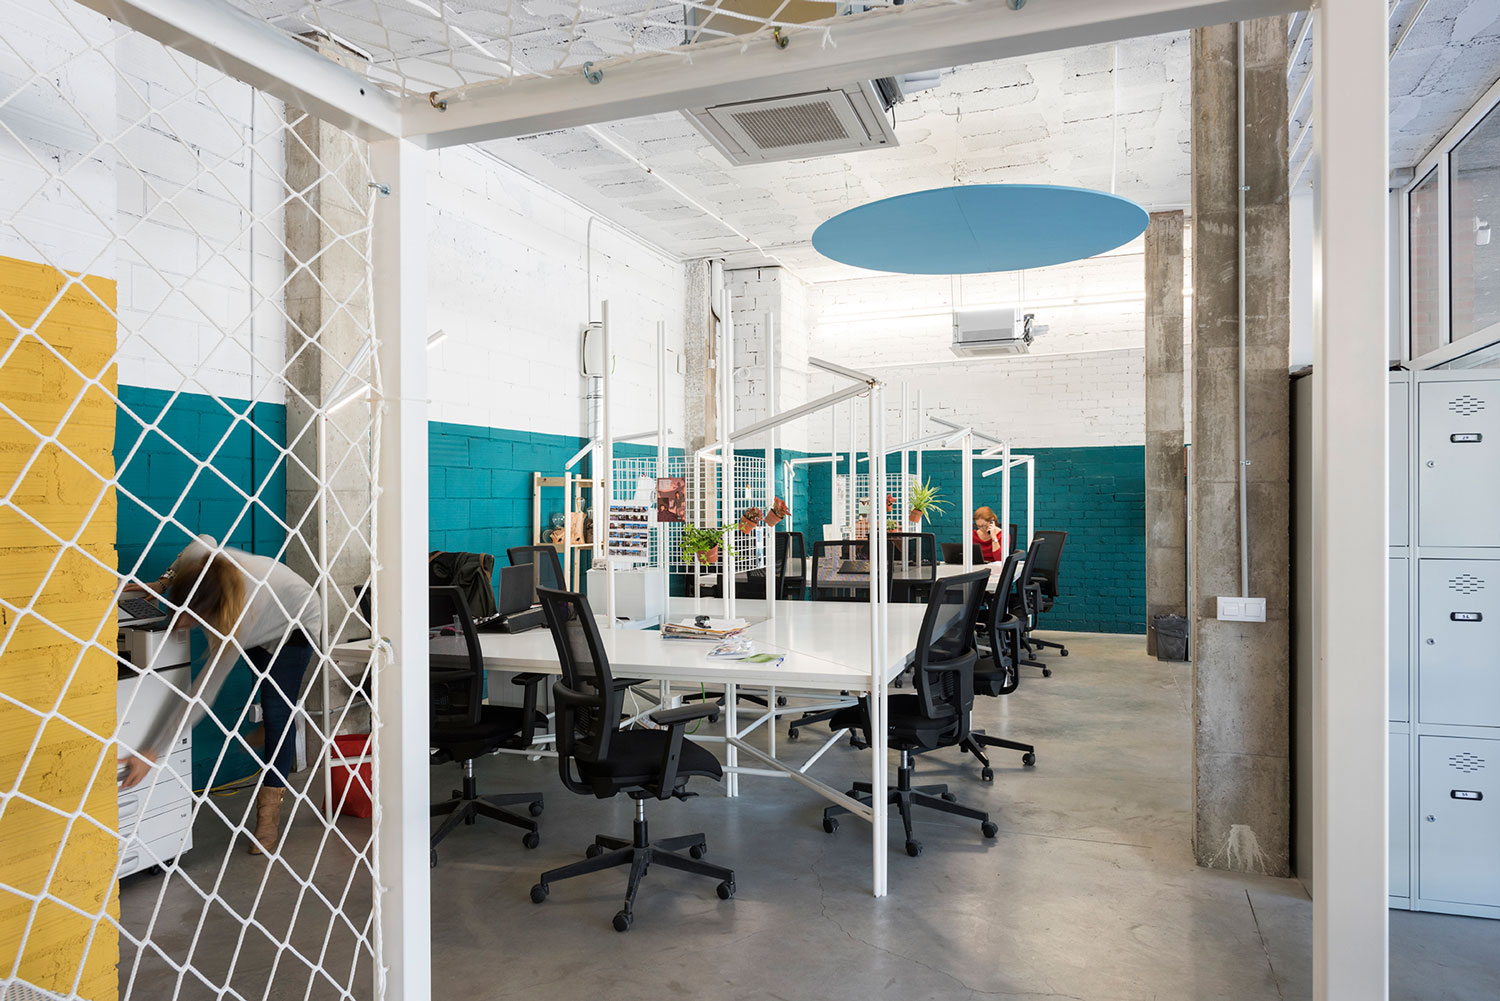 Sin rgics social co working space in barcelona by casa for Office interior solutions